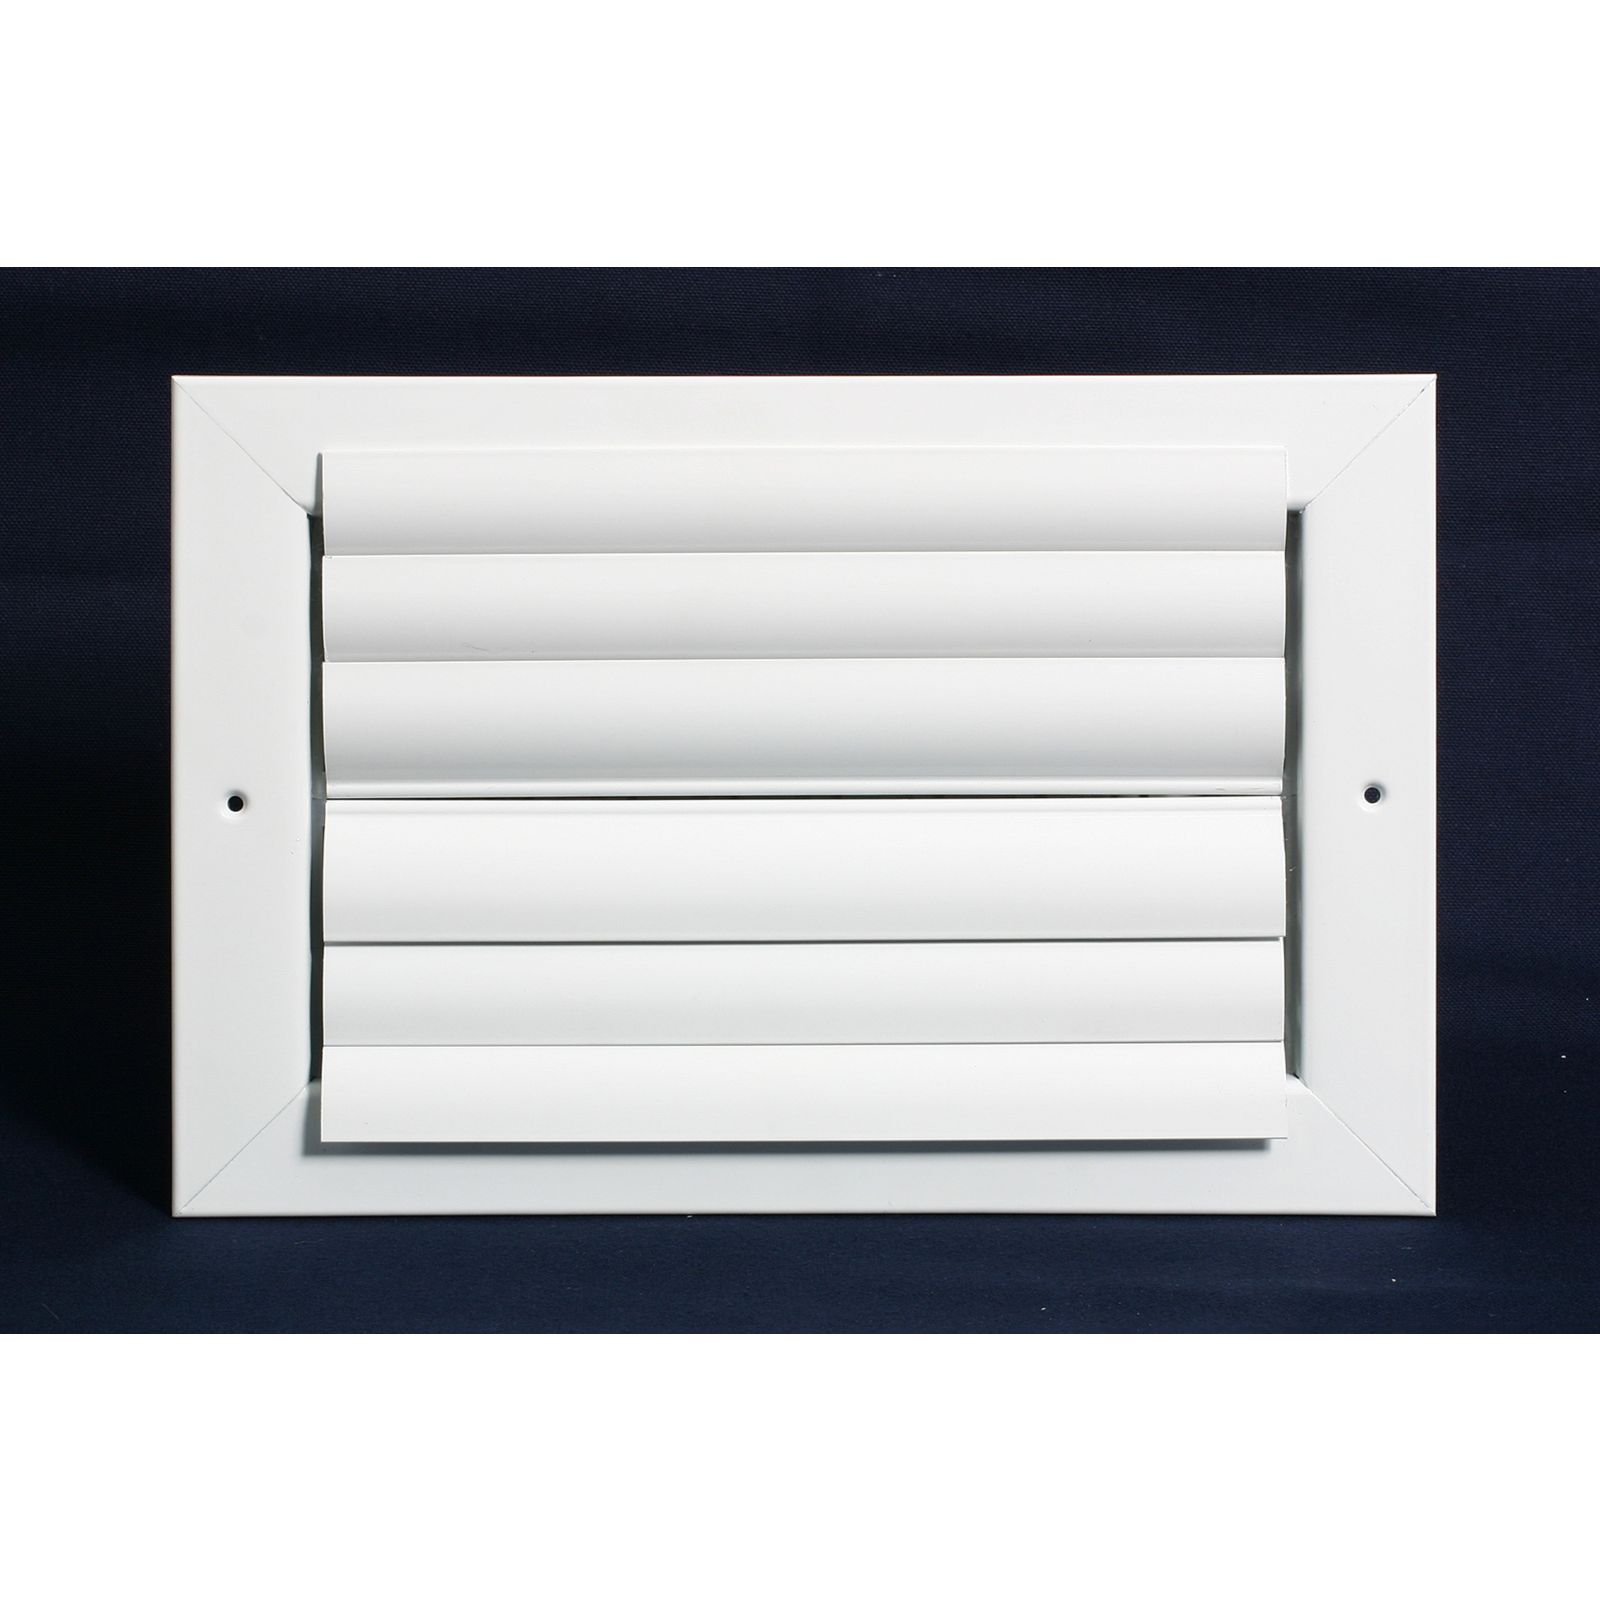 "Grille Tech CL2M1206 - Aluminum Ceiling 2-Way Deflection Supply, Multi-shutter 12"" X 6"" White"